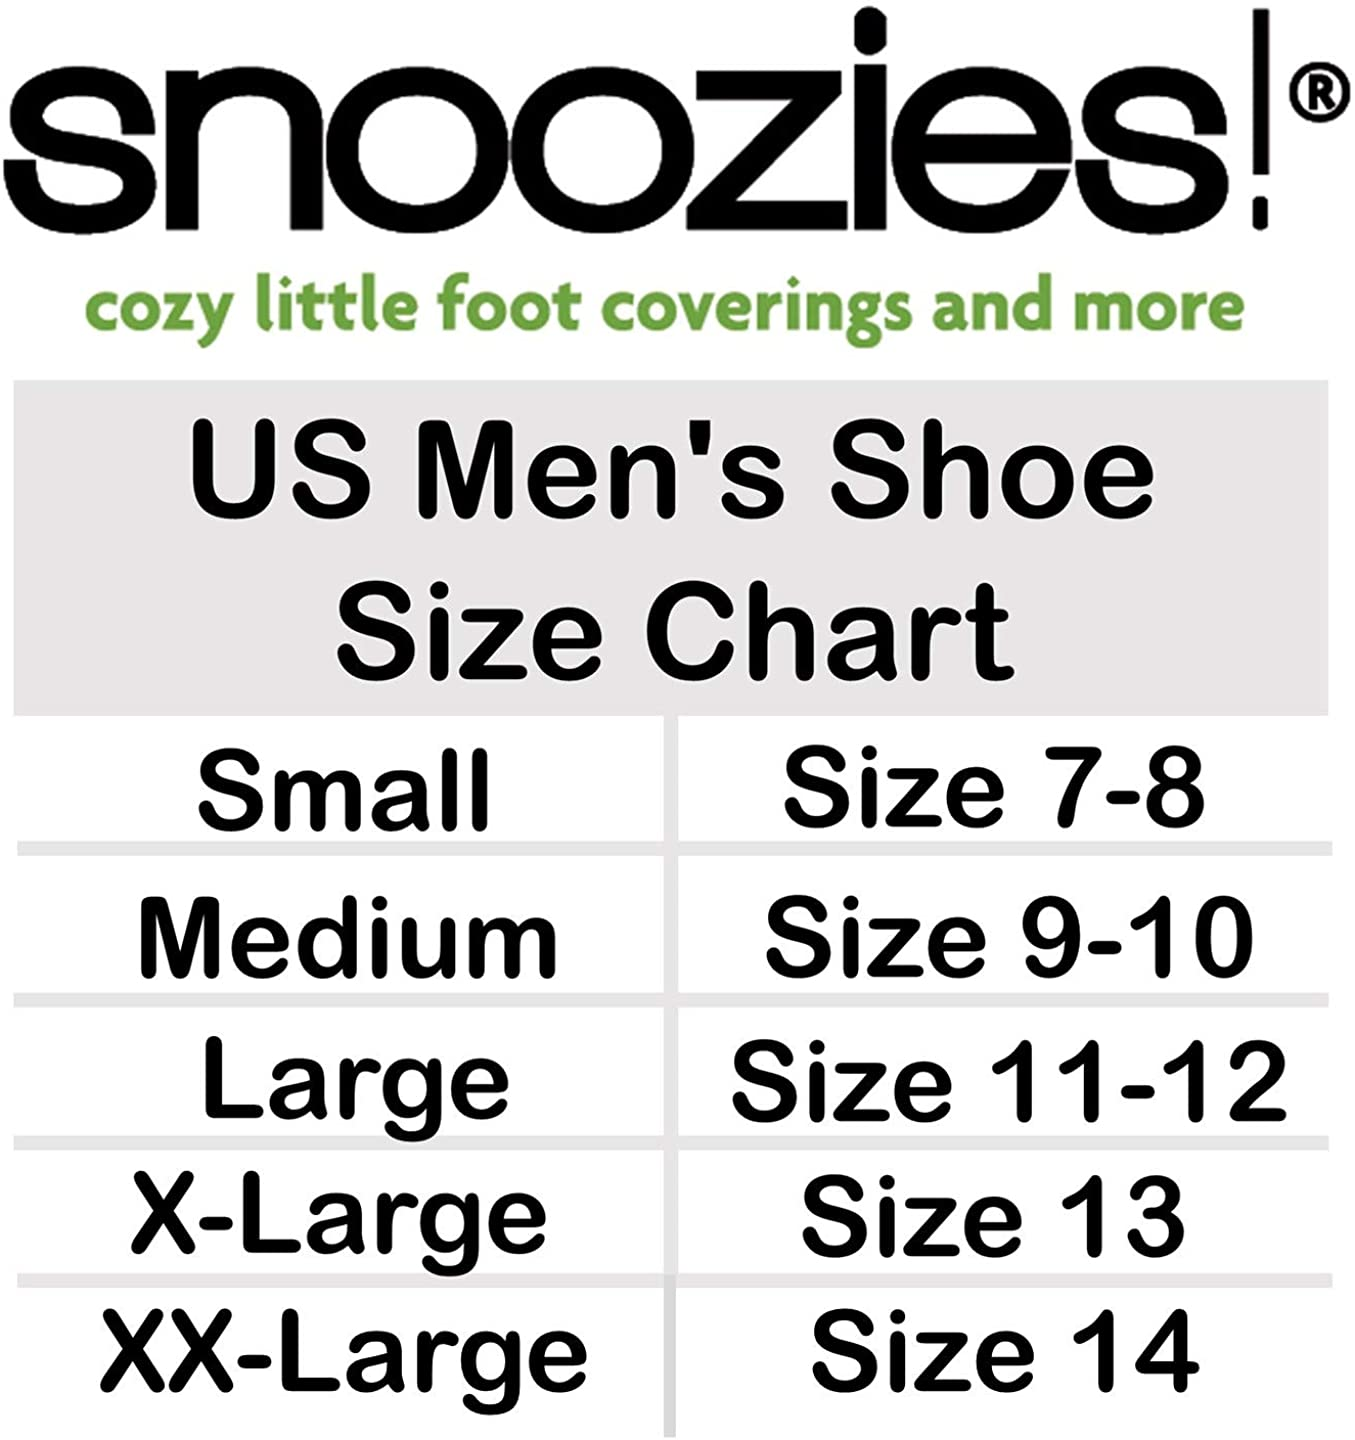 Snoozies Mens Two Tone Fleece Lined Slippers Soft Sole Mens House Slippers Multiple Sizes and Colors Fuzzy Mens Slipper Socks Comfortable Slippers for Men